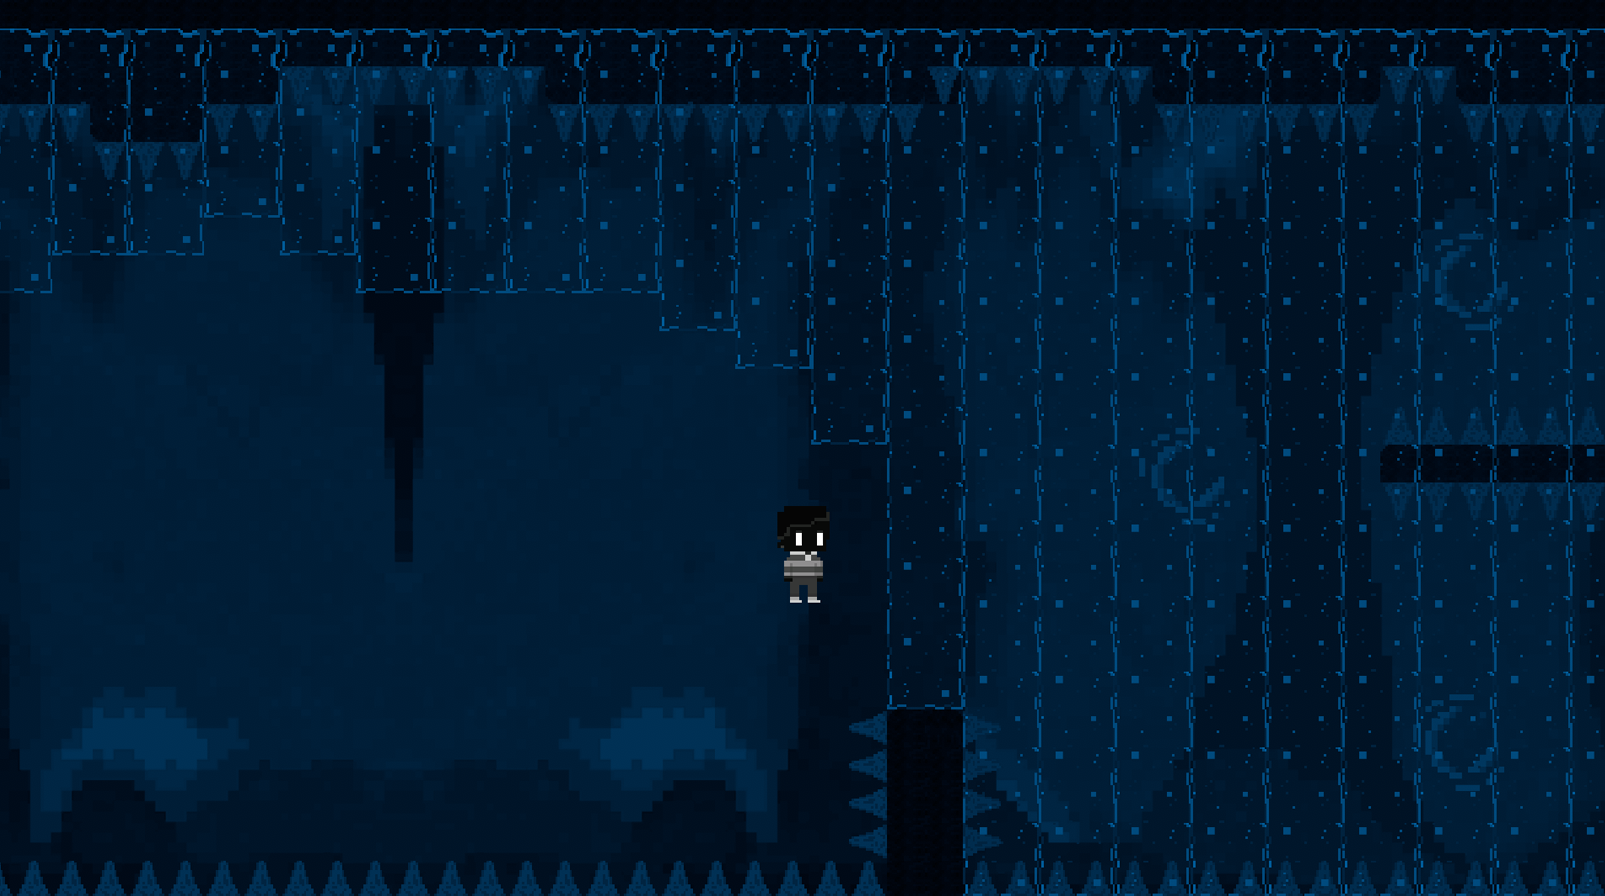 Showcase of water/ice walls